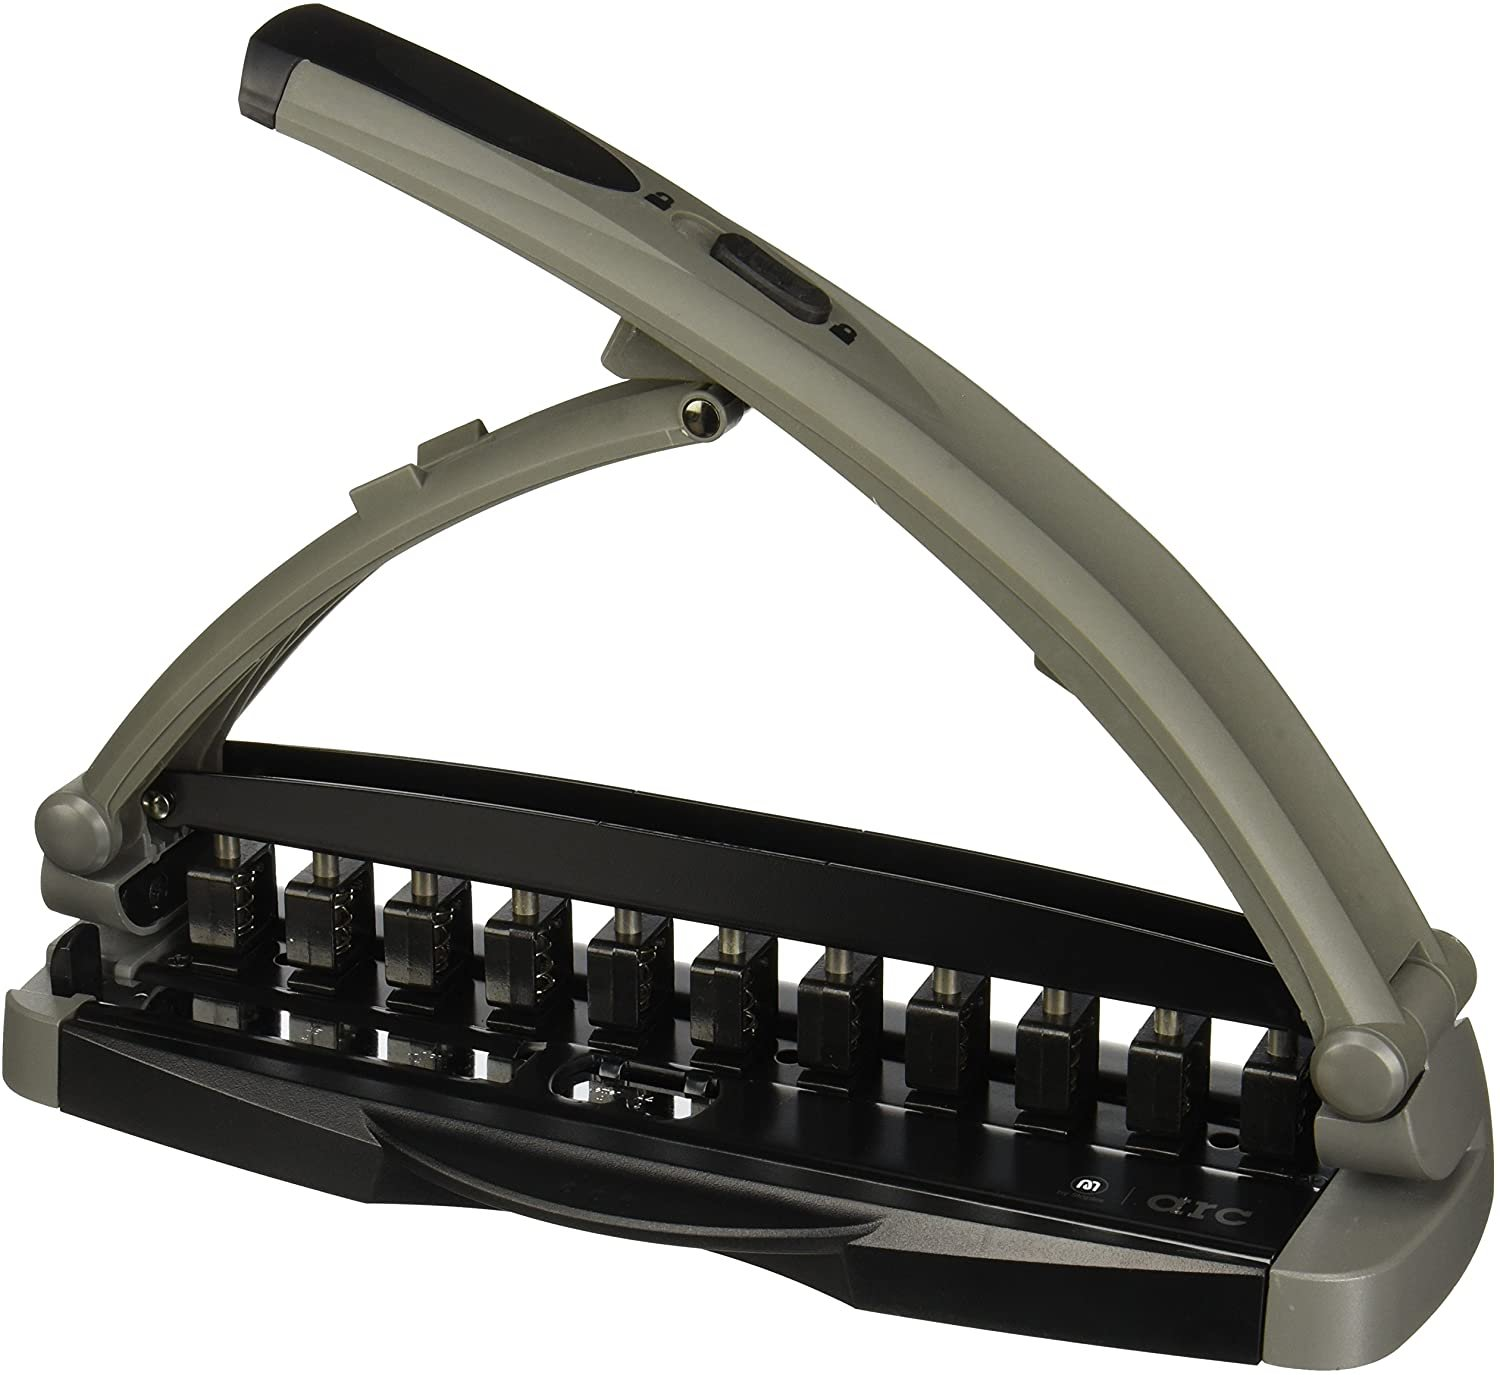 Staples Arc System Adjustable Punch, 8 Sheet Capacity, Gray (40836)!